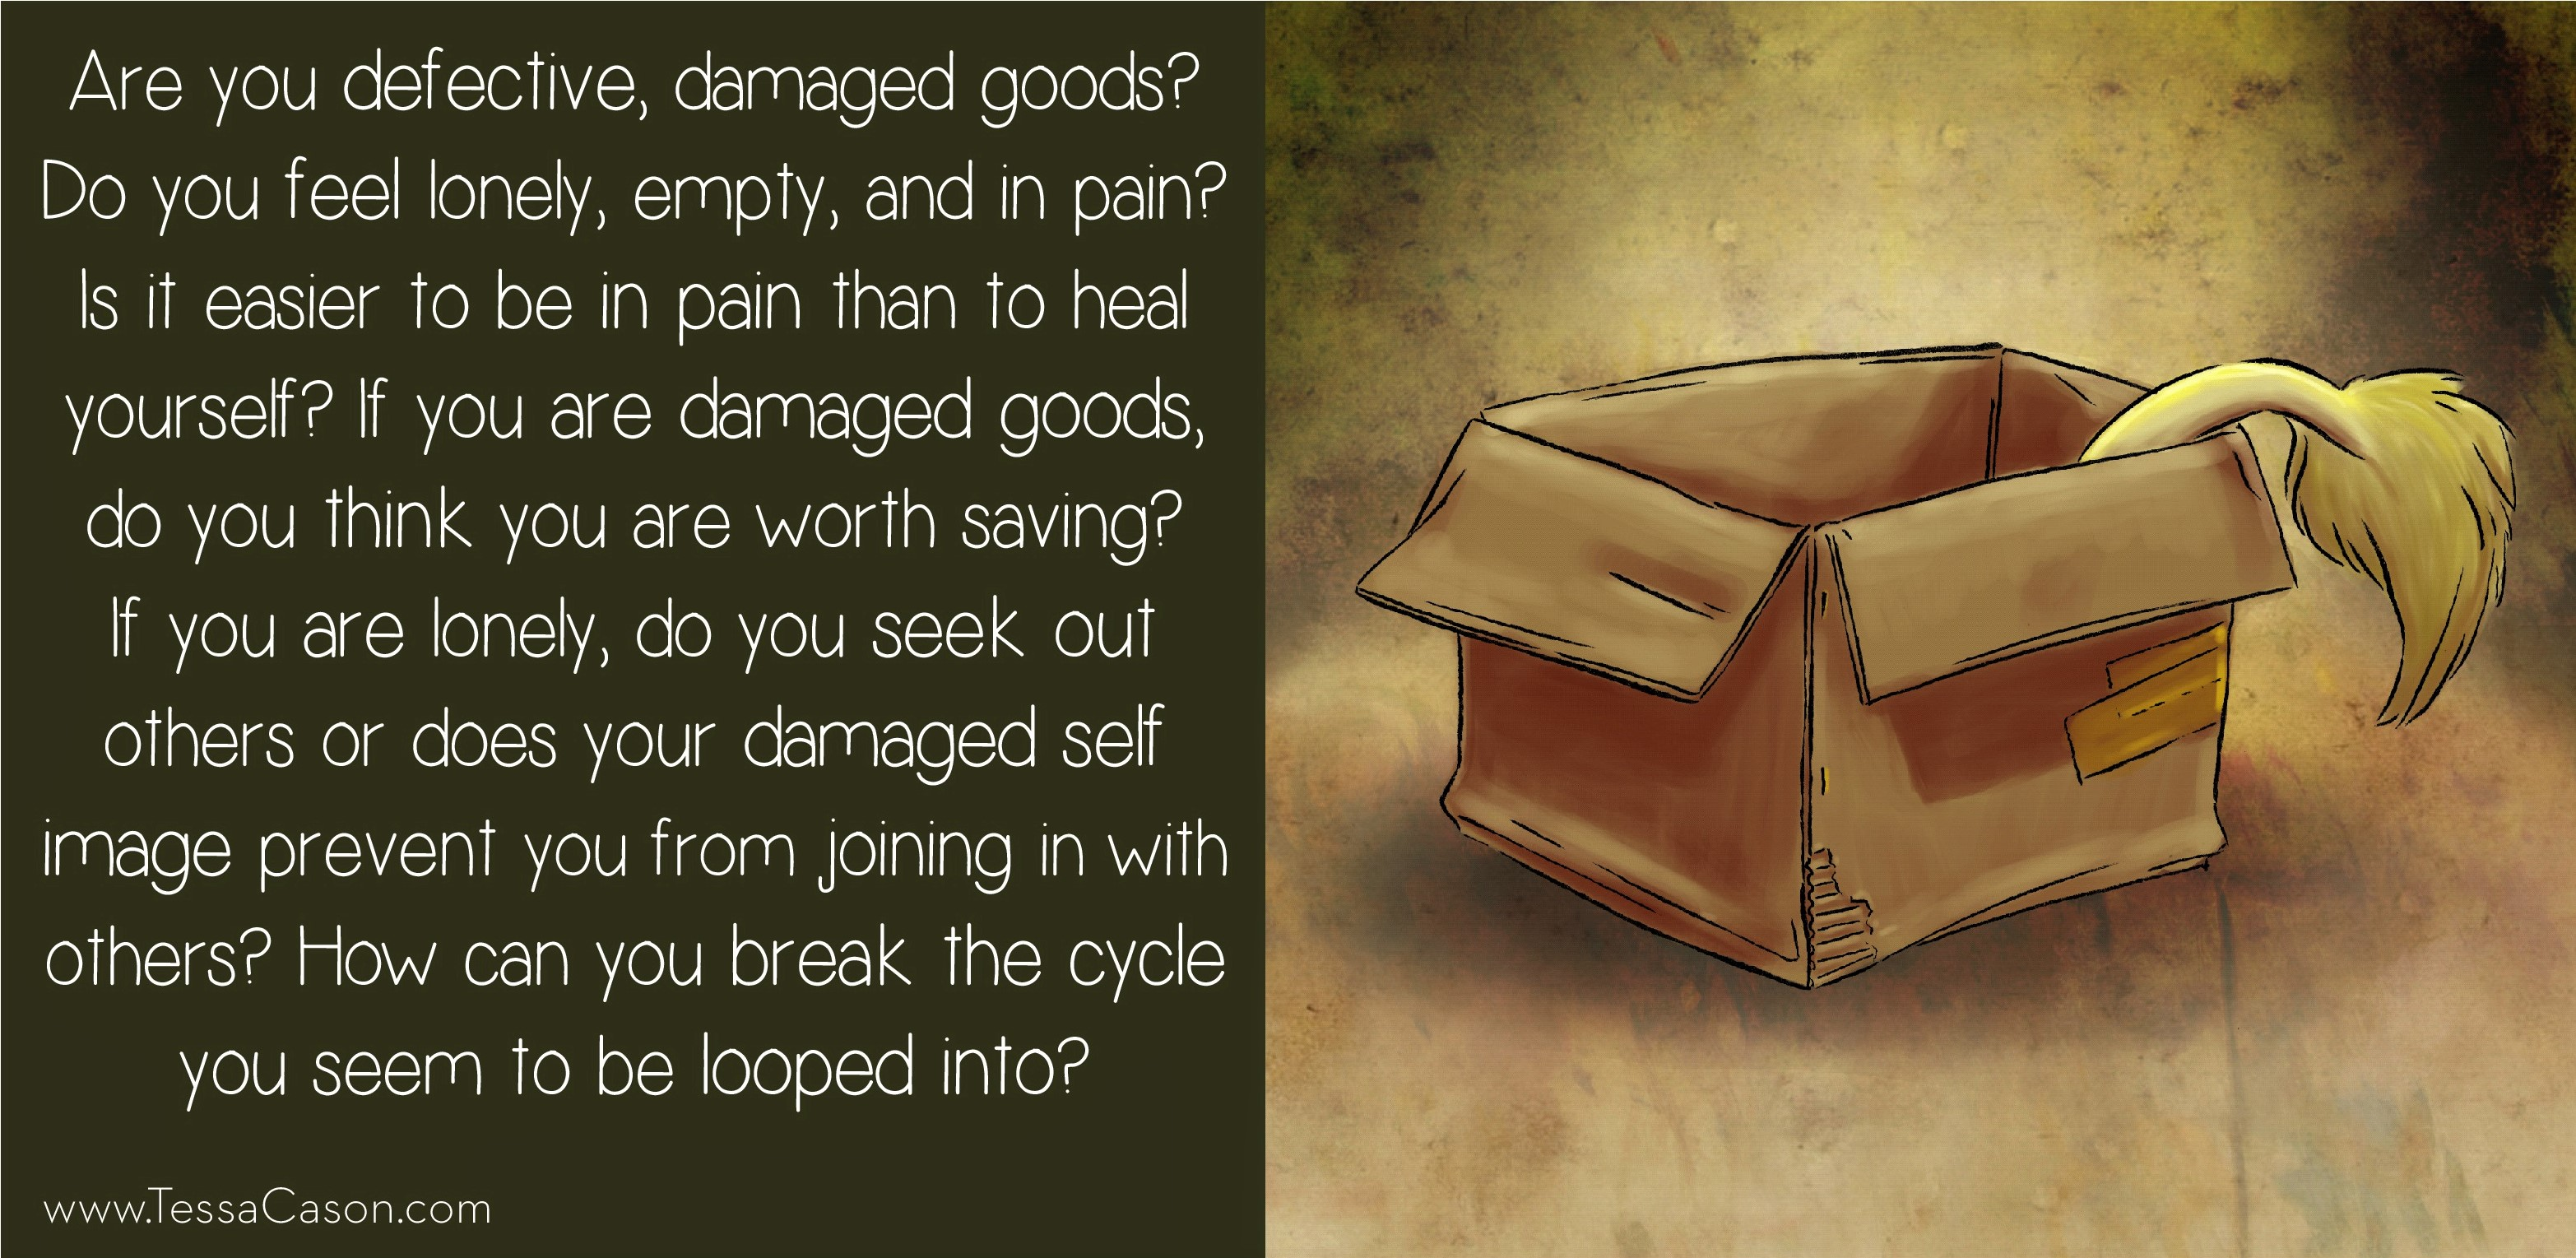 Are you defective, damaged goods